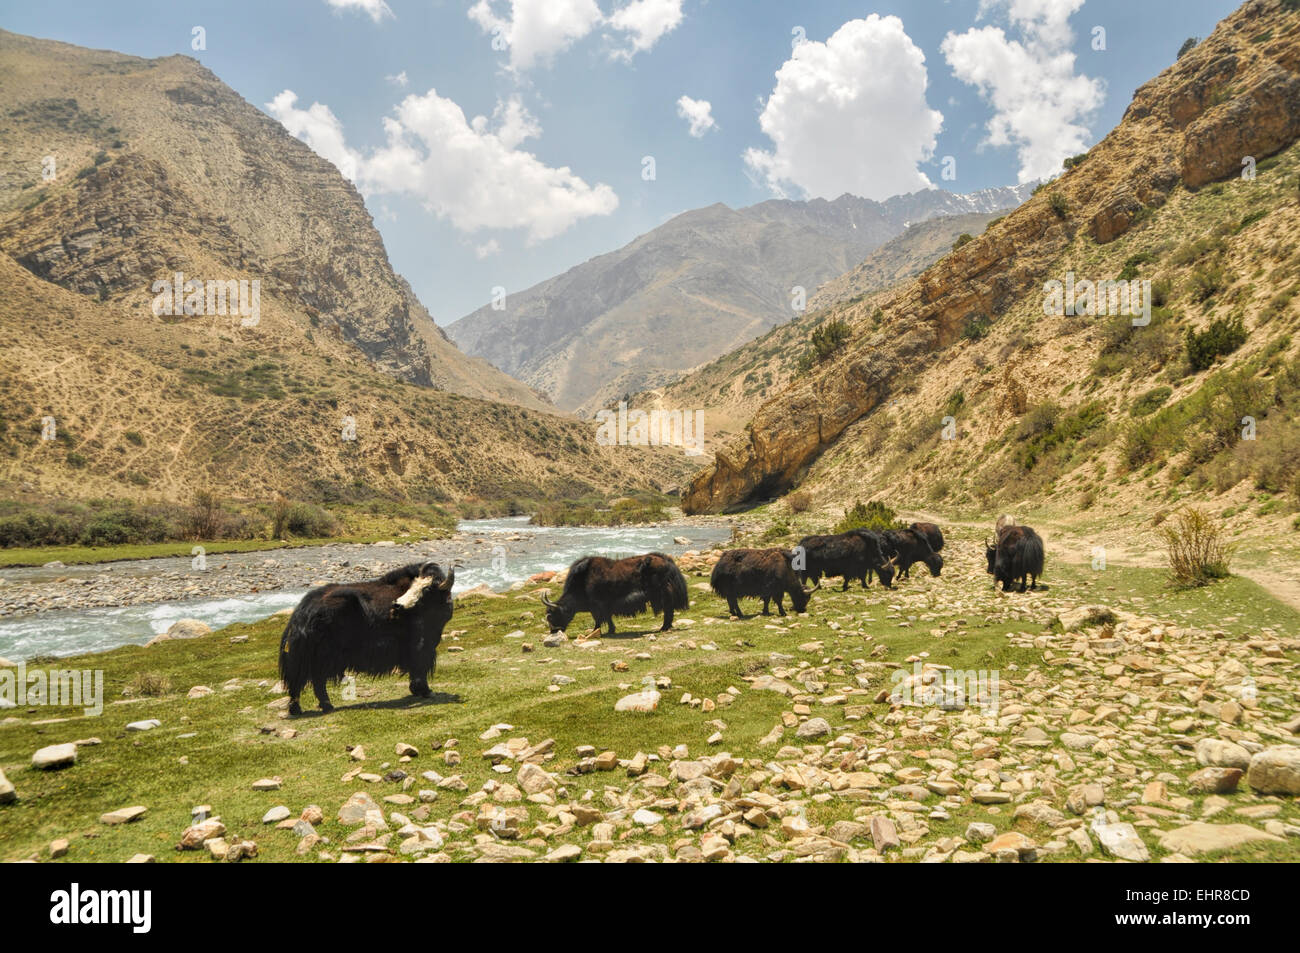 Yaks in scenic valley in Himalayas mountains in Nepal - Stock Image